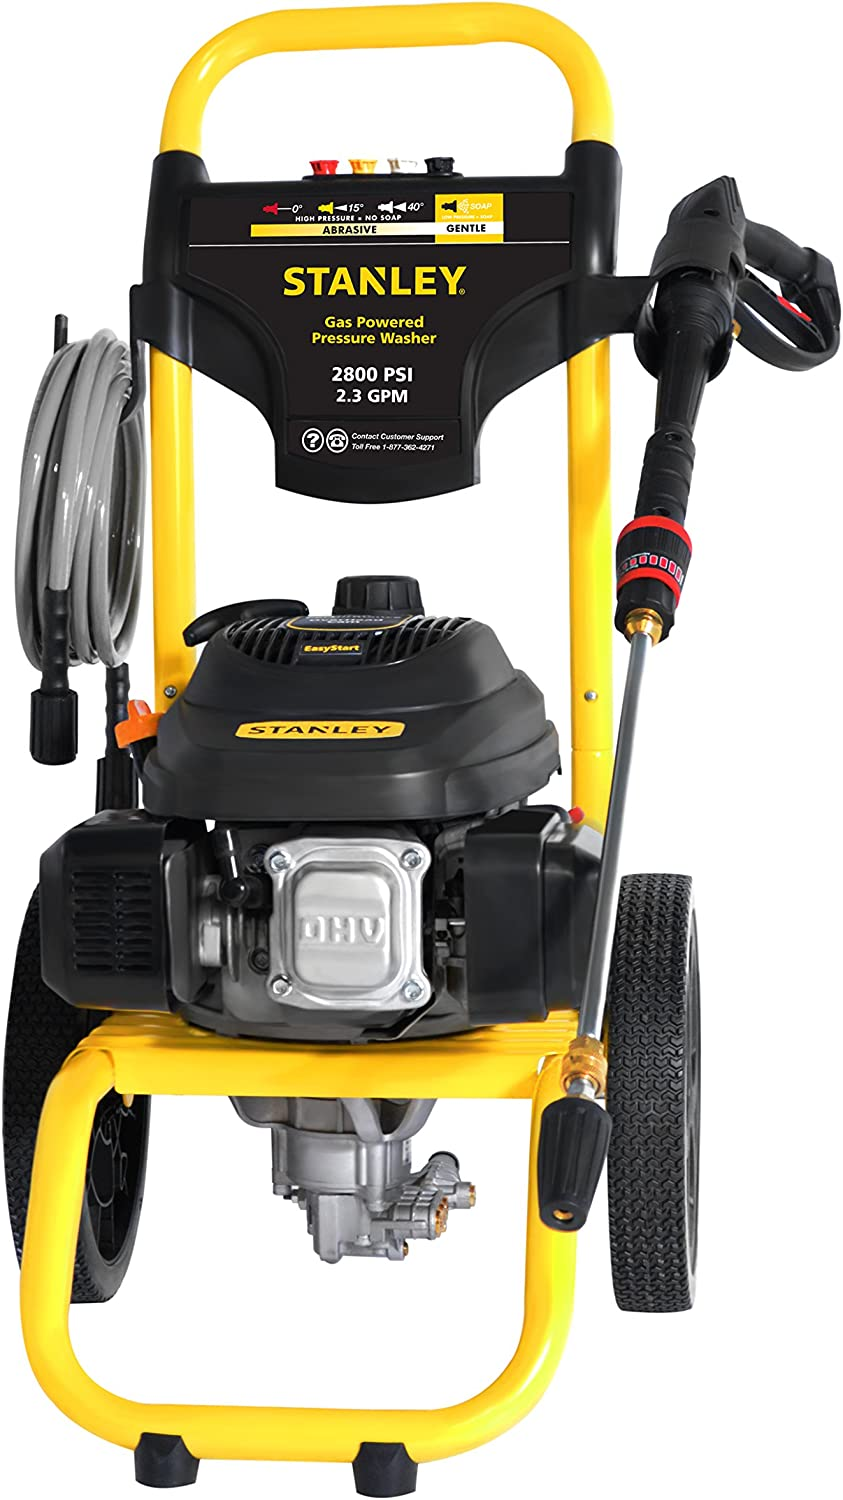 STANLEY SXPW2823 Gas Pressure Washer